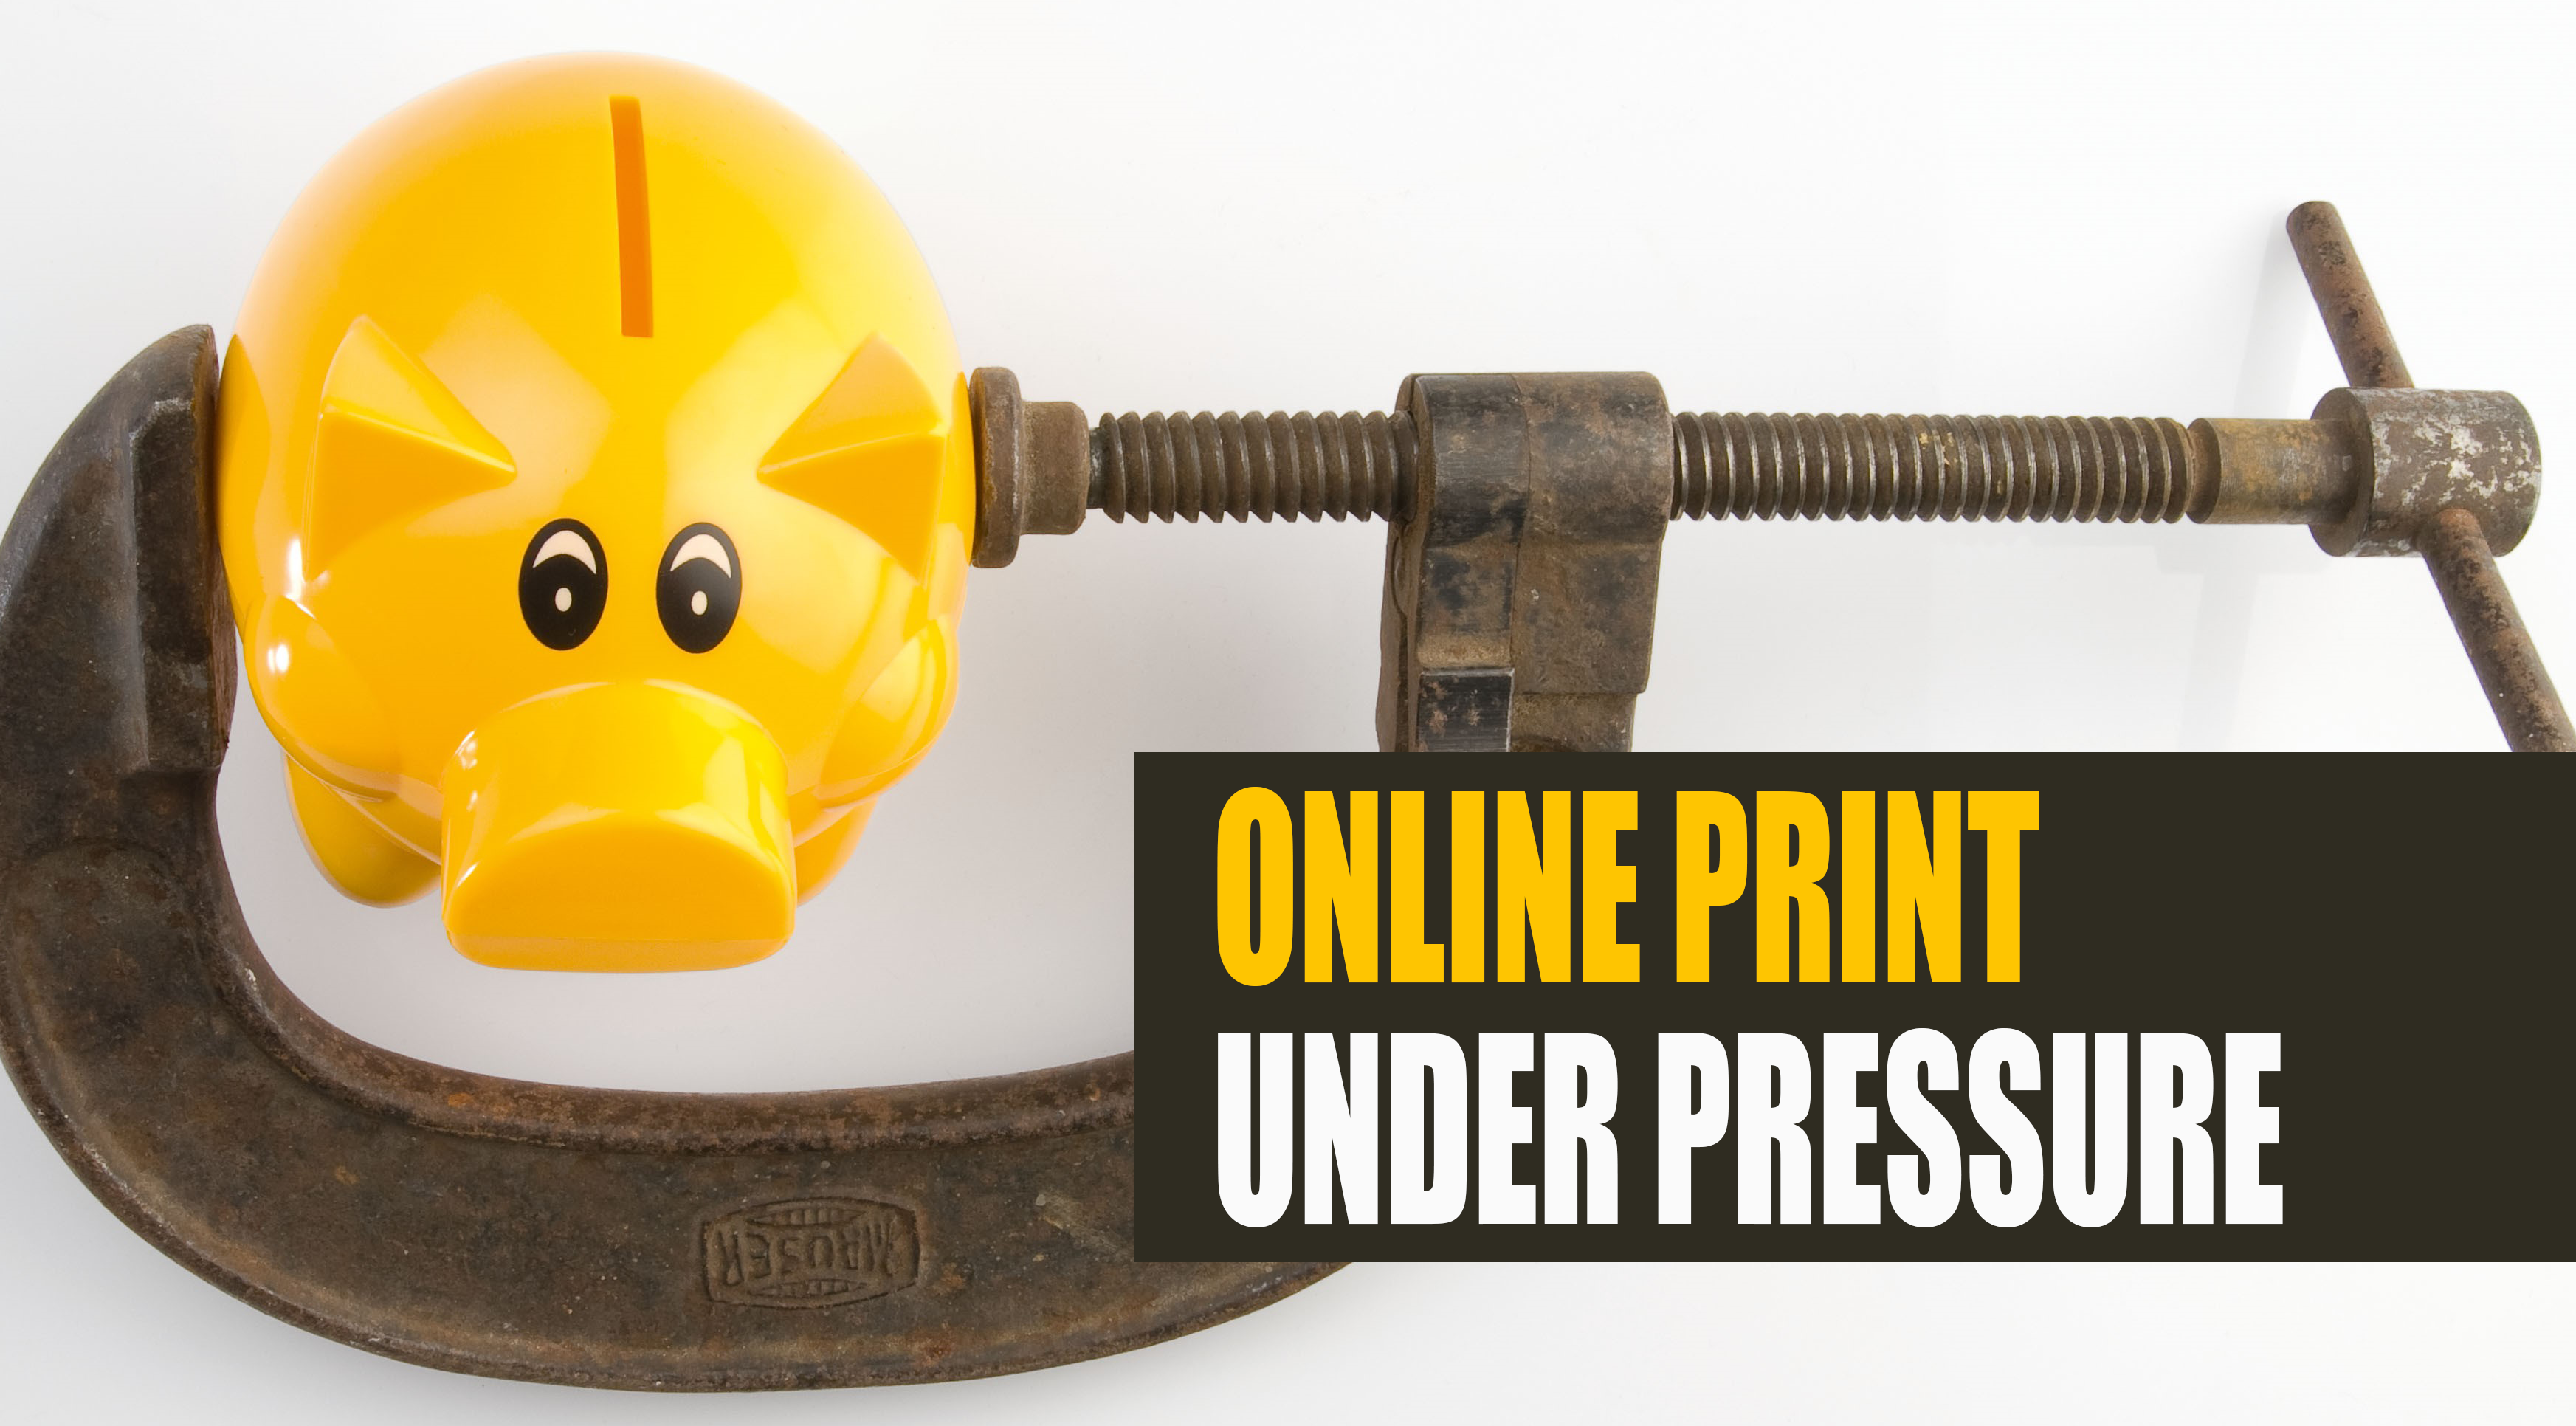 Online print: supply chain and platform dependencies – how long can this situation continue?